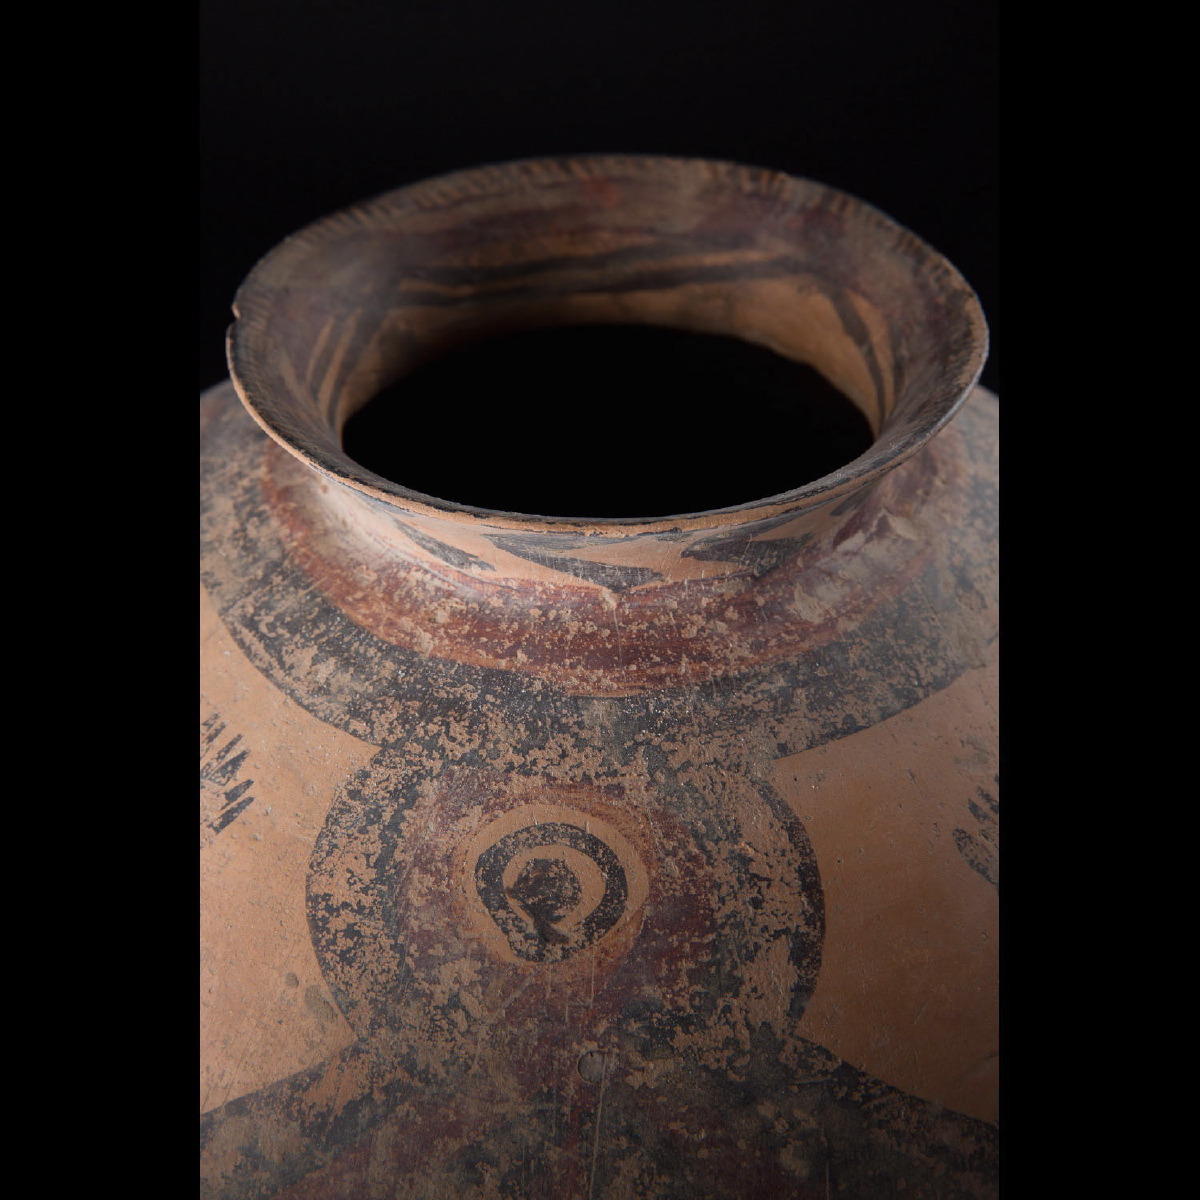 Photo of neolithic-yangshao-machiayao-chinese-vase-antropomorphic-design-galerie-golconda